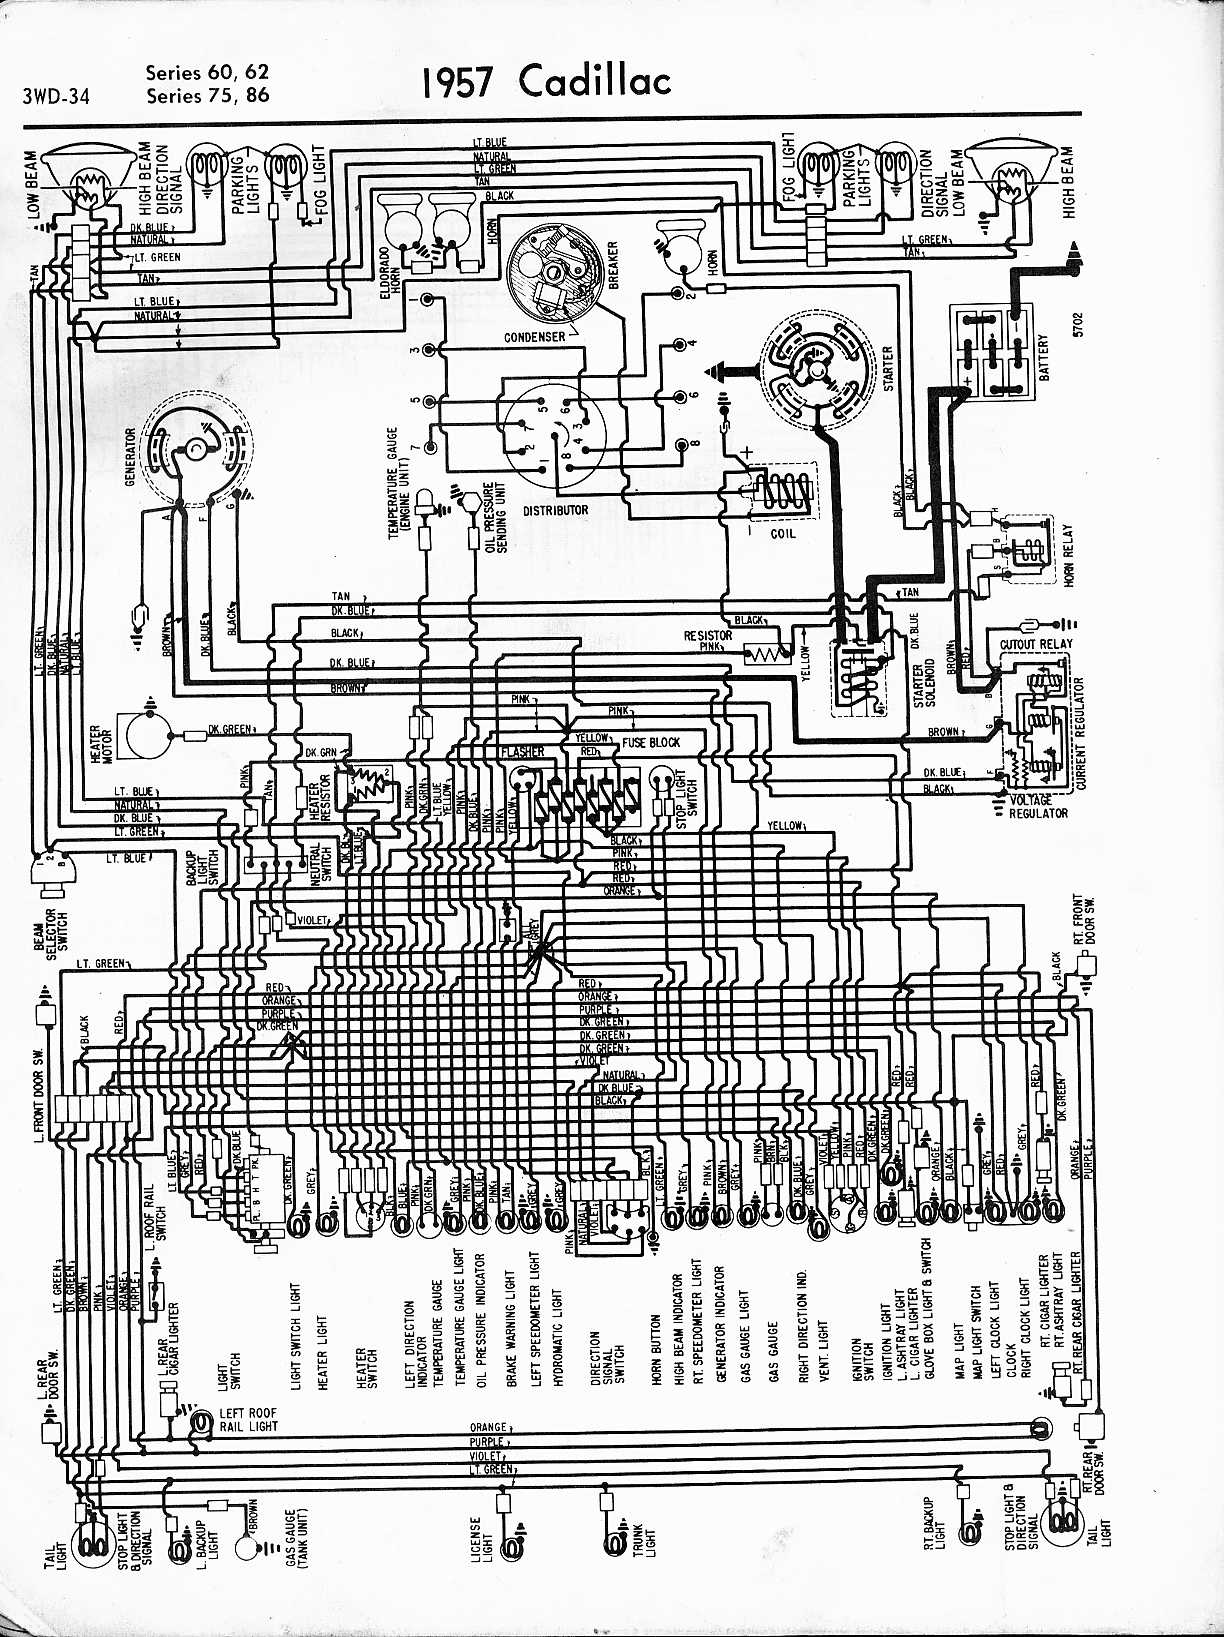 hight resolution of cadillac wiring diagram nice place to get wiring diagram u2022 rh usxcleague com cadillac deville stereo wiring diagram 1993 cadillac deville wiring diagram